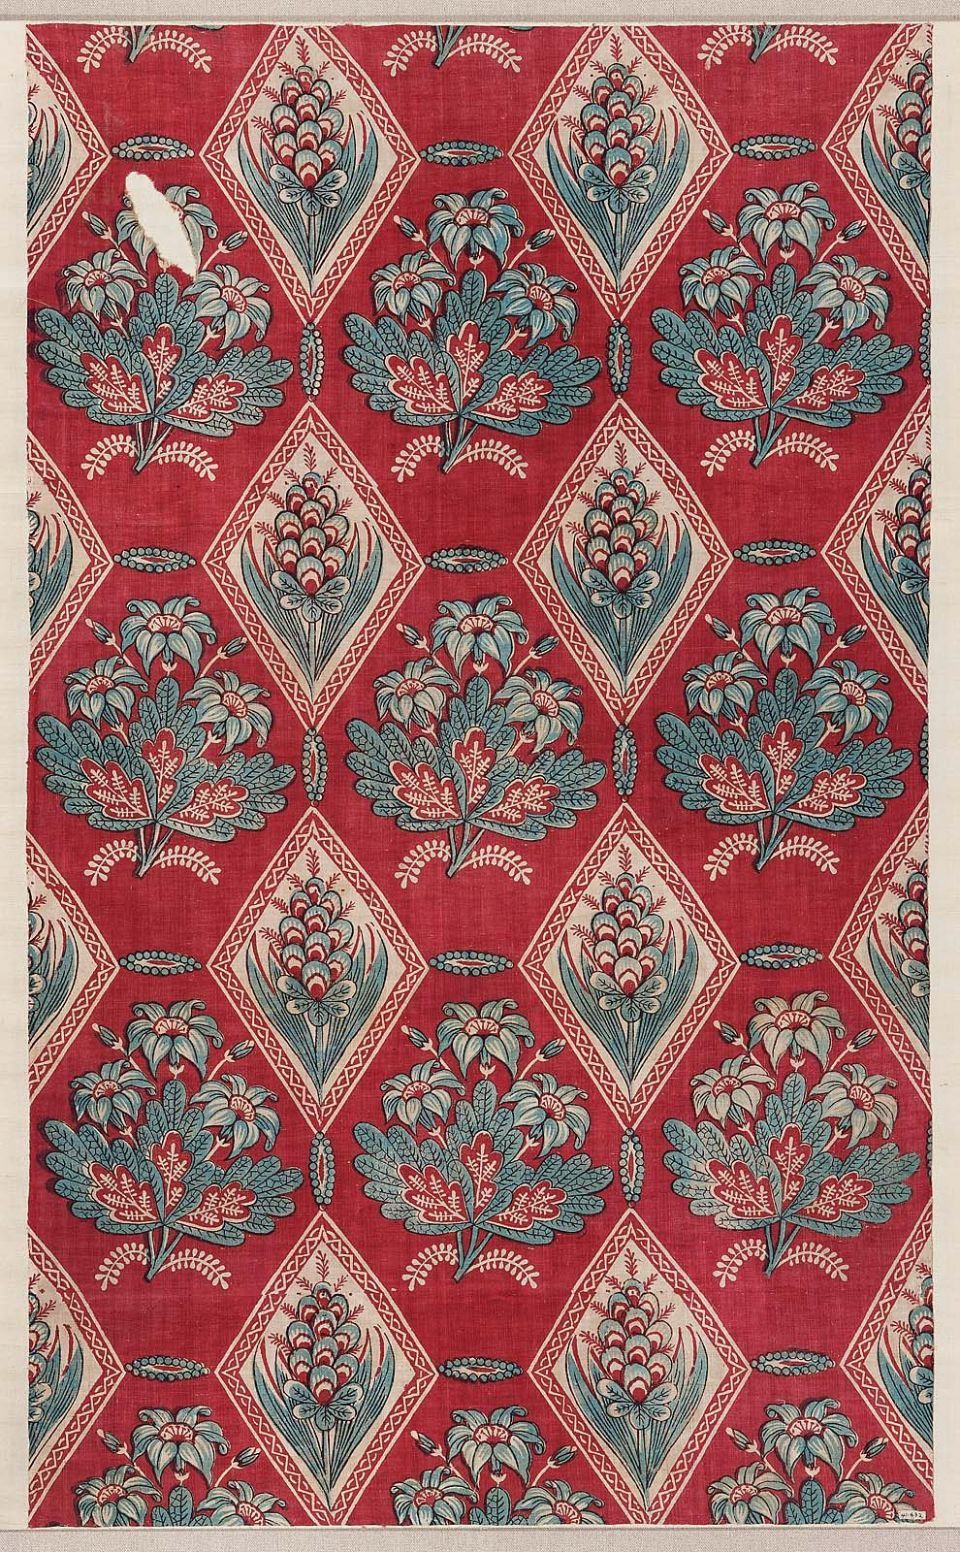 Printed Cotton French Late 18th Century Antique